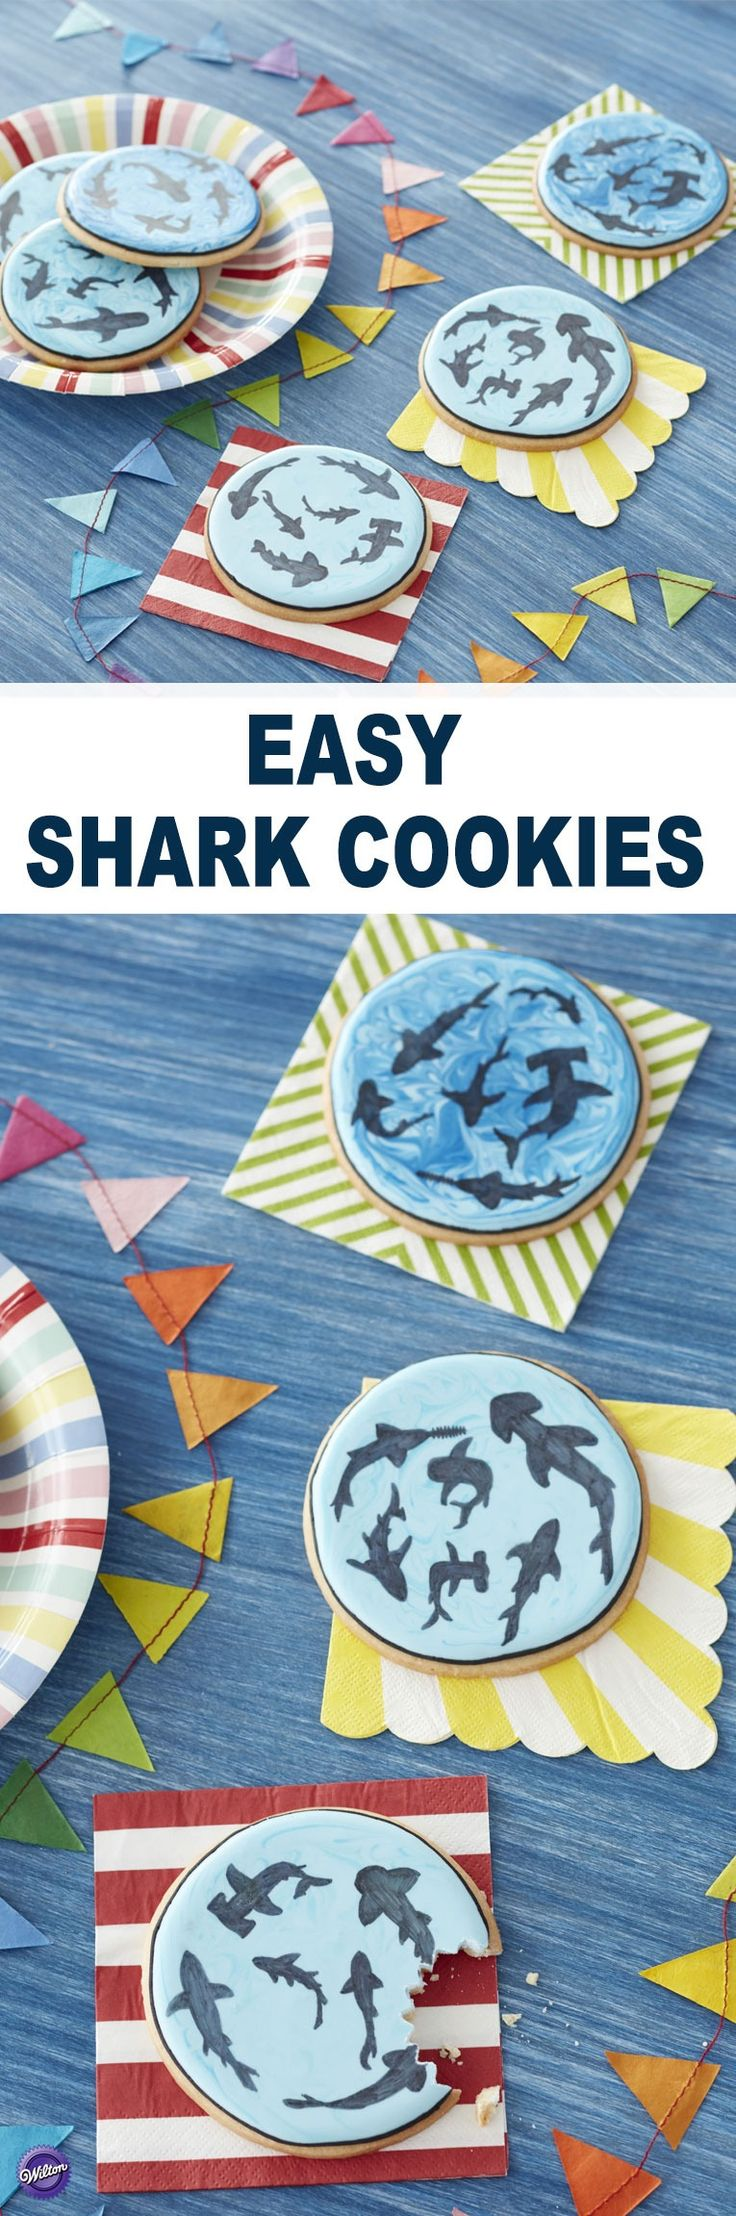 Kick off your jaw-some celebration with these Shark Cookies. Made using royal icing and FoodWriter markers, these roll-out cookies showcase great whites, hammerheads, nurse sharks and more. A delicious bite for anyone who loves these denizens of the deep, these Shark Cookies are a great way to kick off the best week of summer!